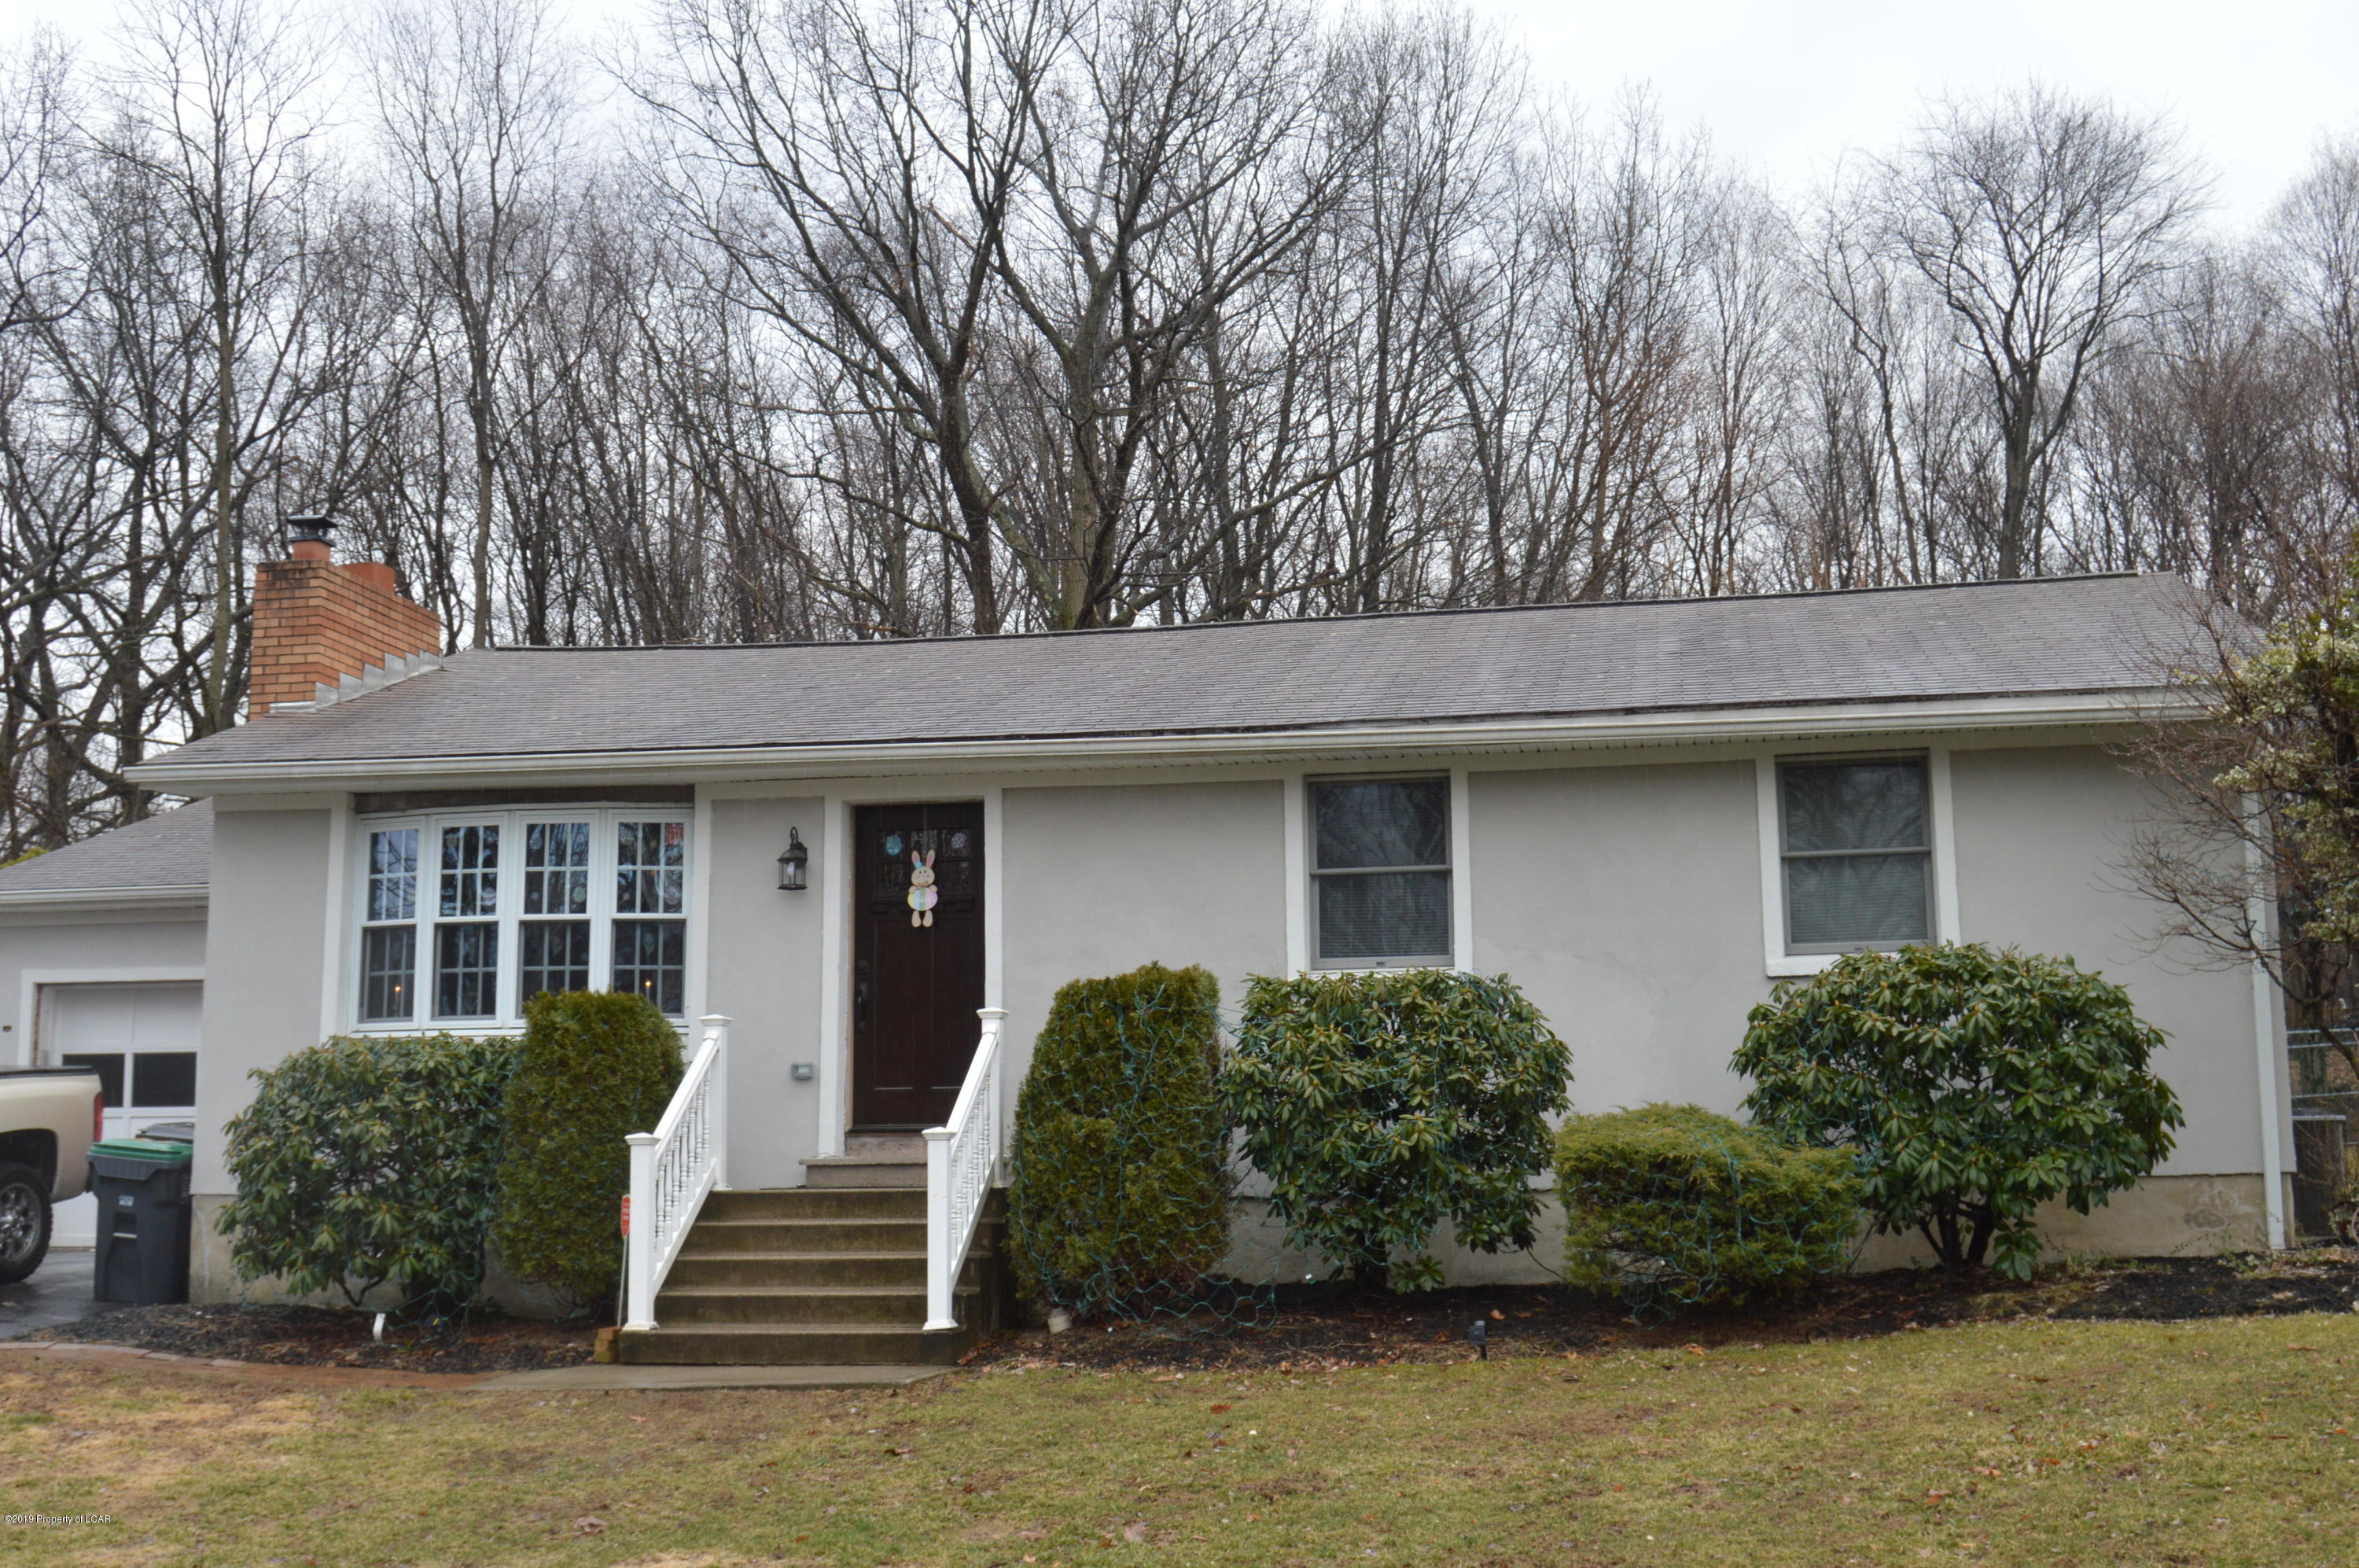 Home For Sale At 4 Para 1iuf66kzi7yf In Jenkins Township, PA For $228,000